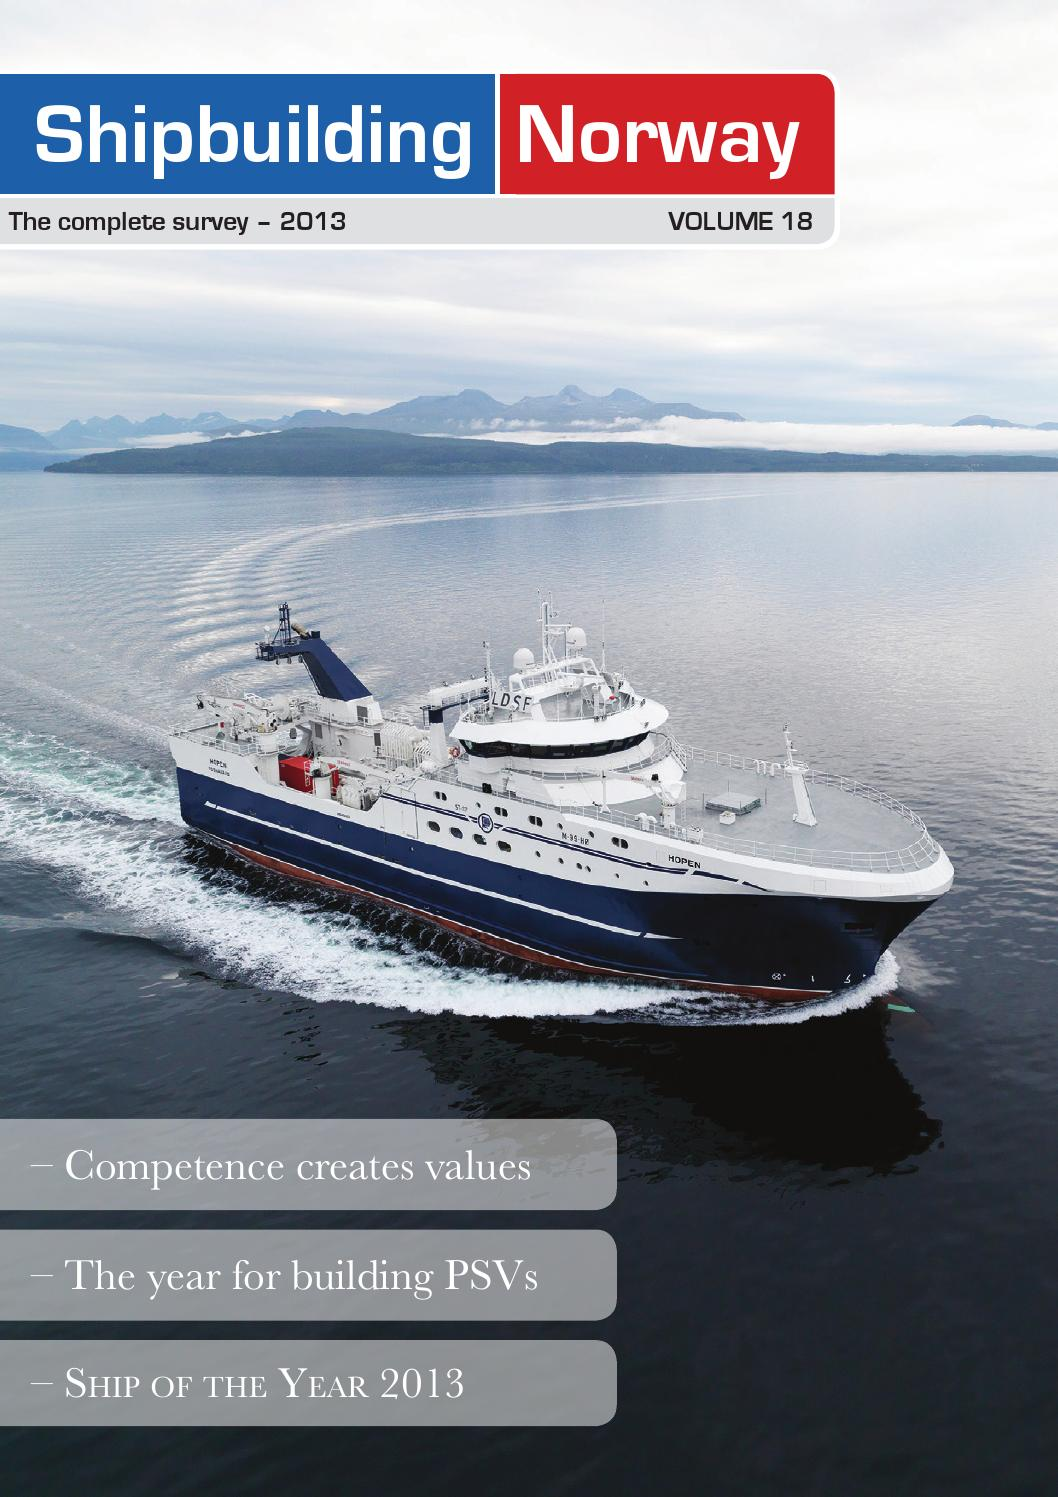 Shipbuilding Norway - Volume 18 by Skipsrevyen - issuu